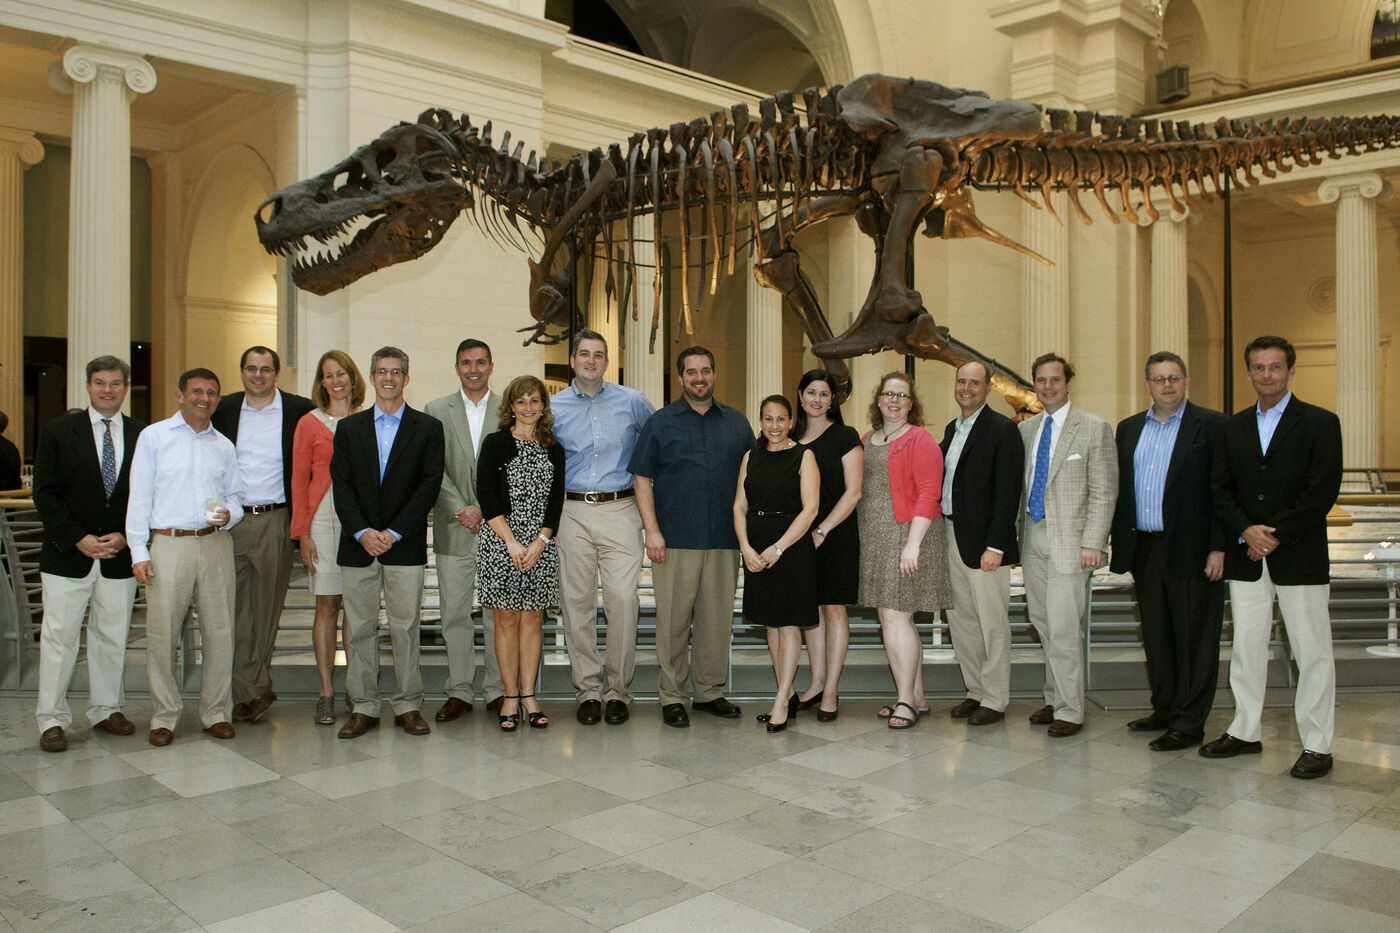 Members of the President's Leadership Council pose in front of SUE the T.rex.